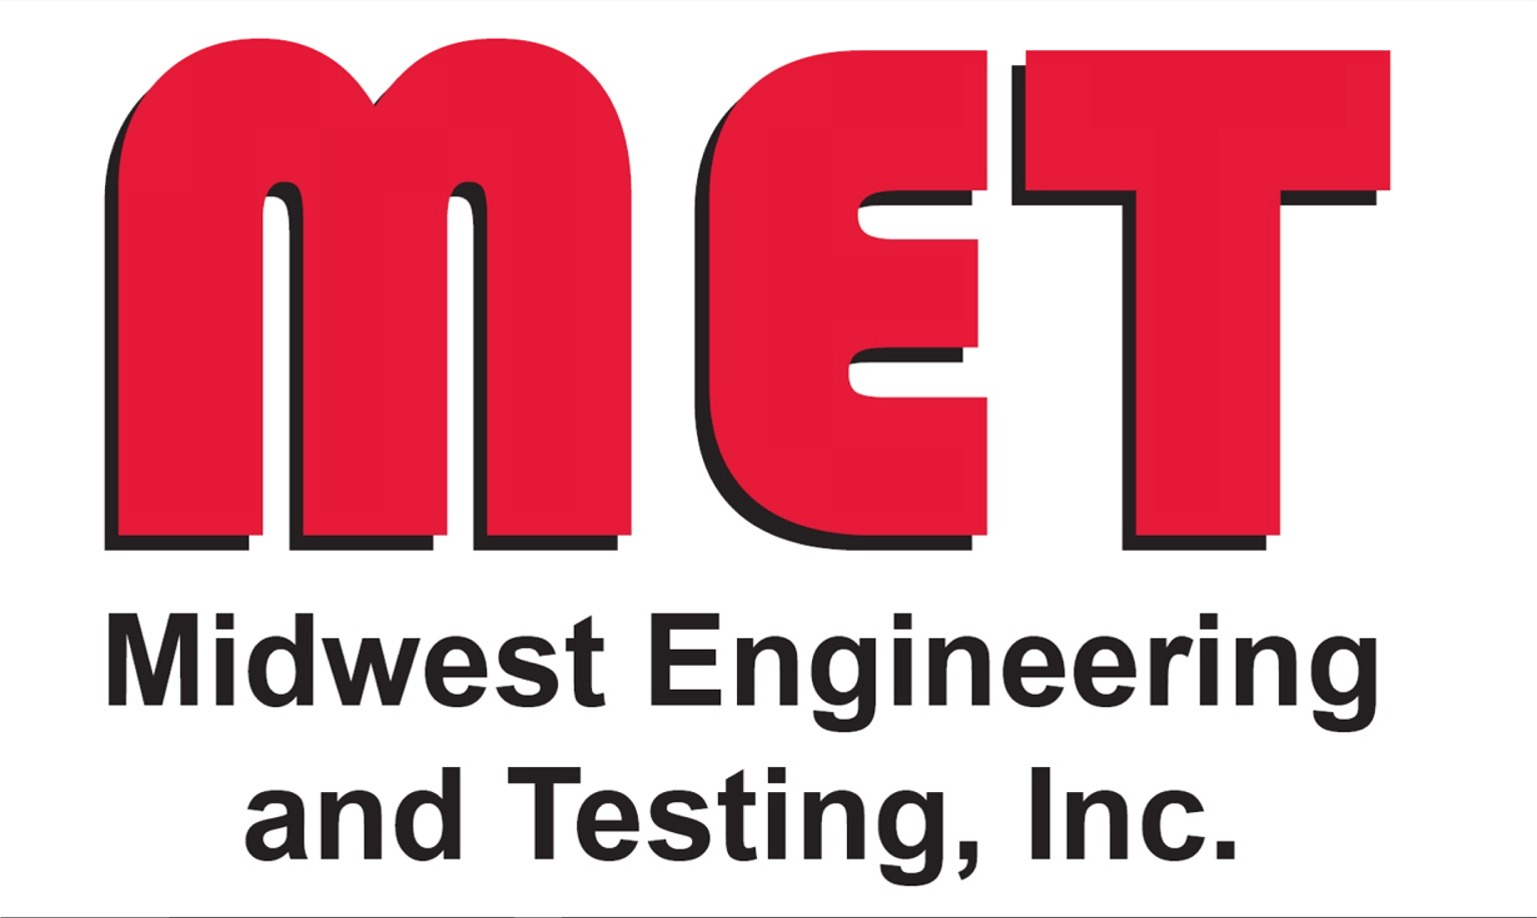 Midwest Engineering and Testing, Inc.